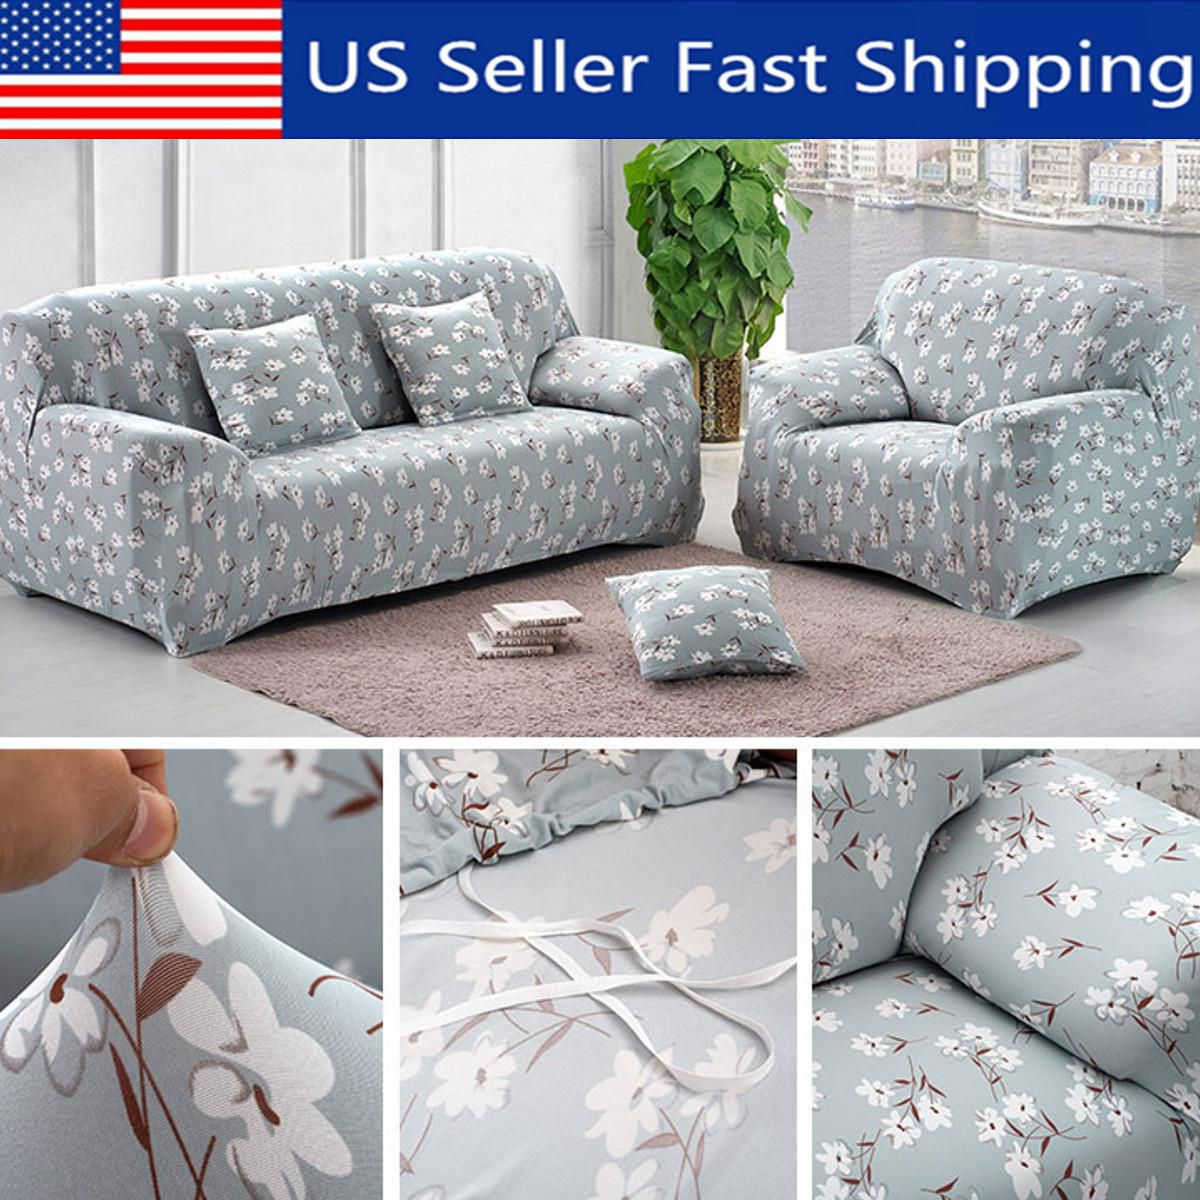 Cool 1 2 3 4 Seat Sofa Slipcover Soft Stretch Couch Cover Pabps2019 Chair Design Images Pabps2019Com